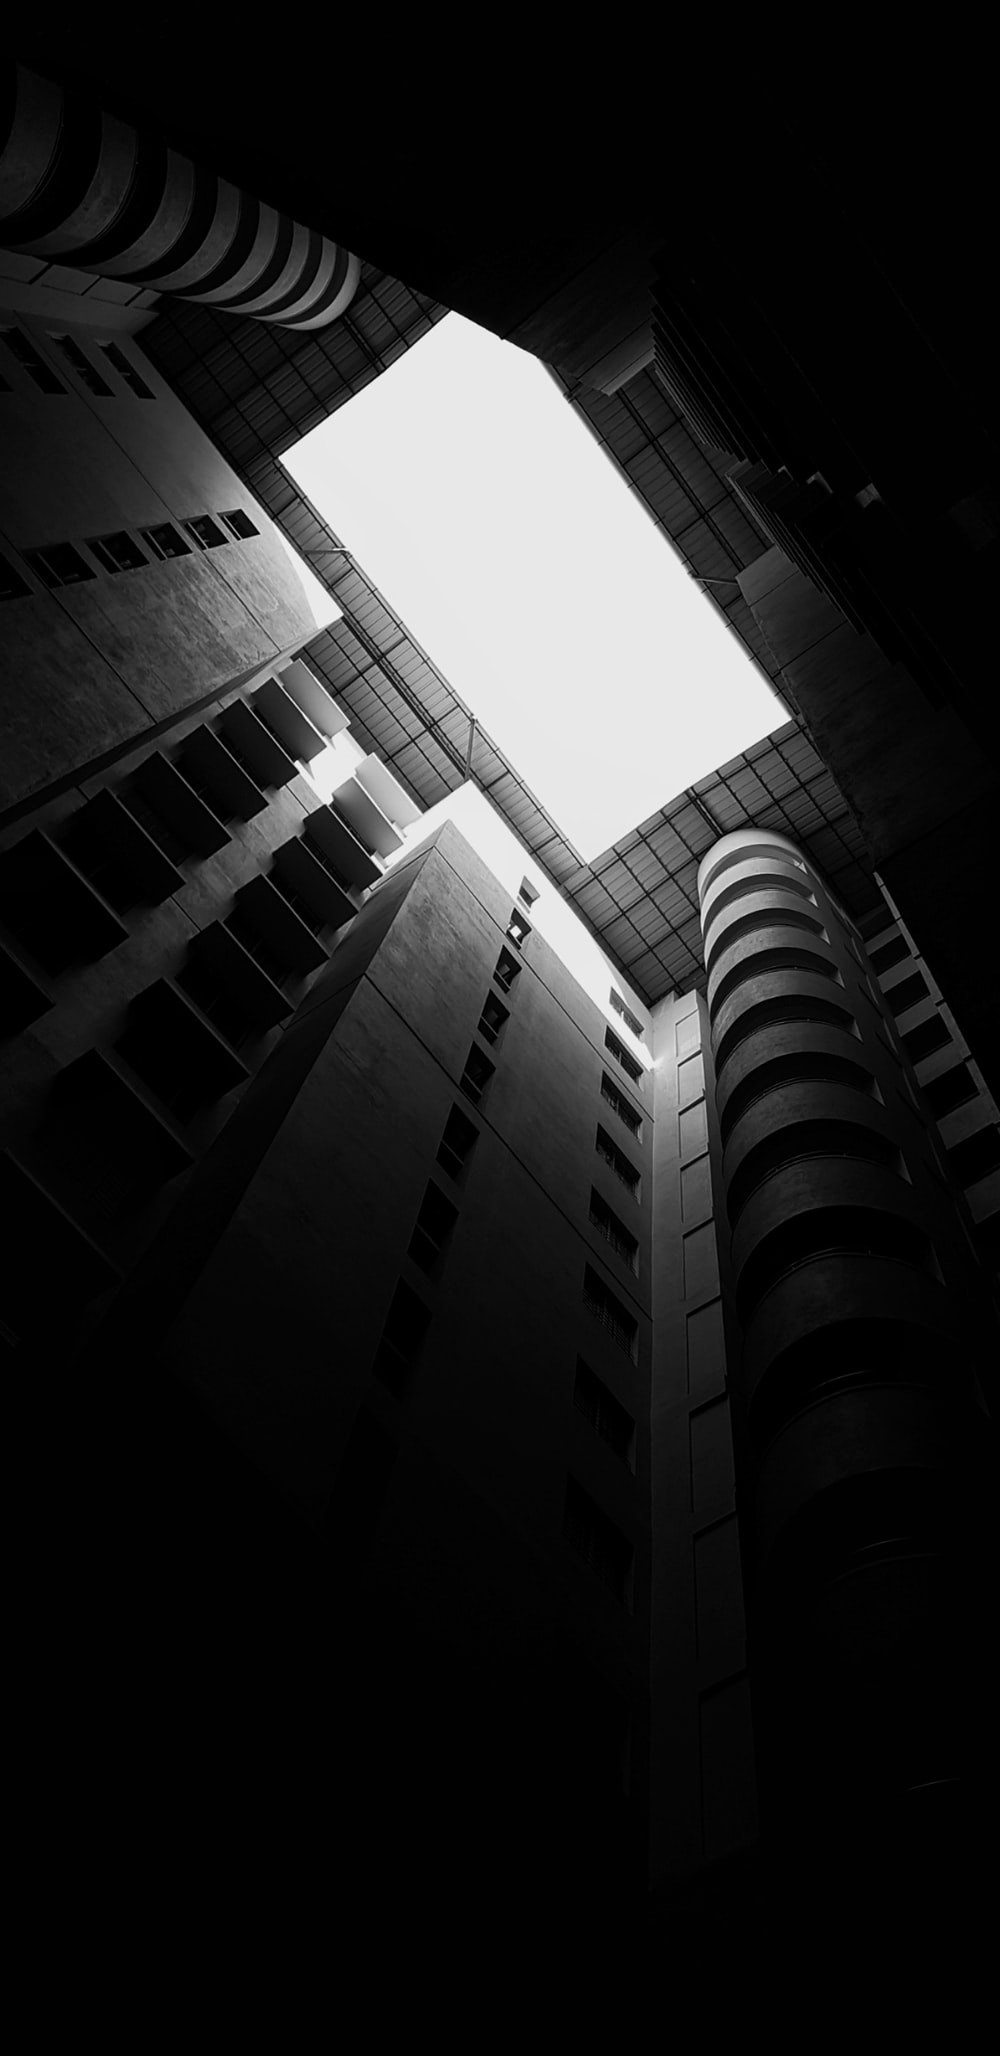 low-angle grayscale photography of a high-rise building